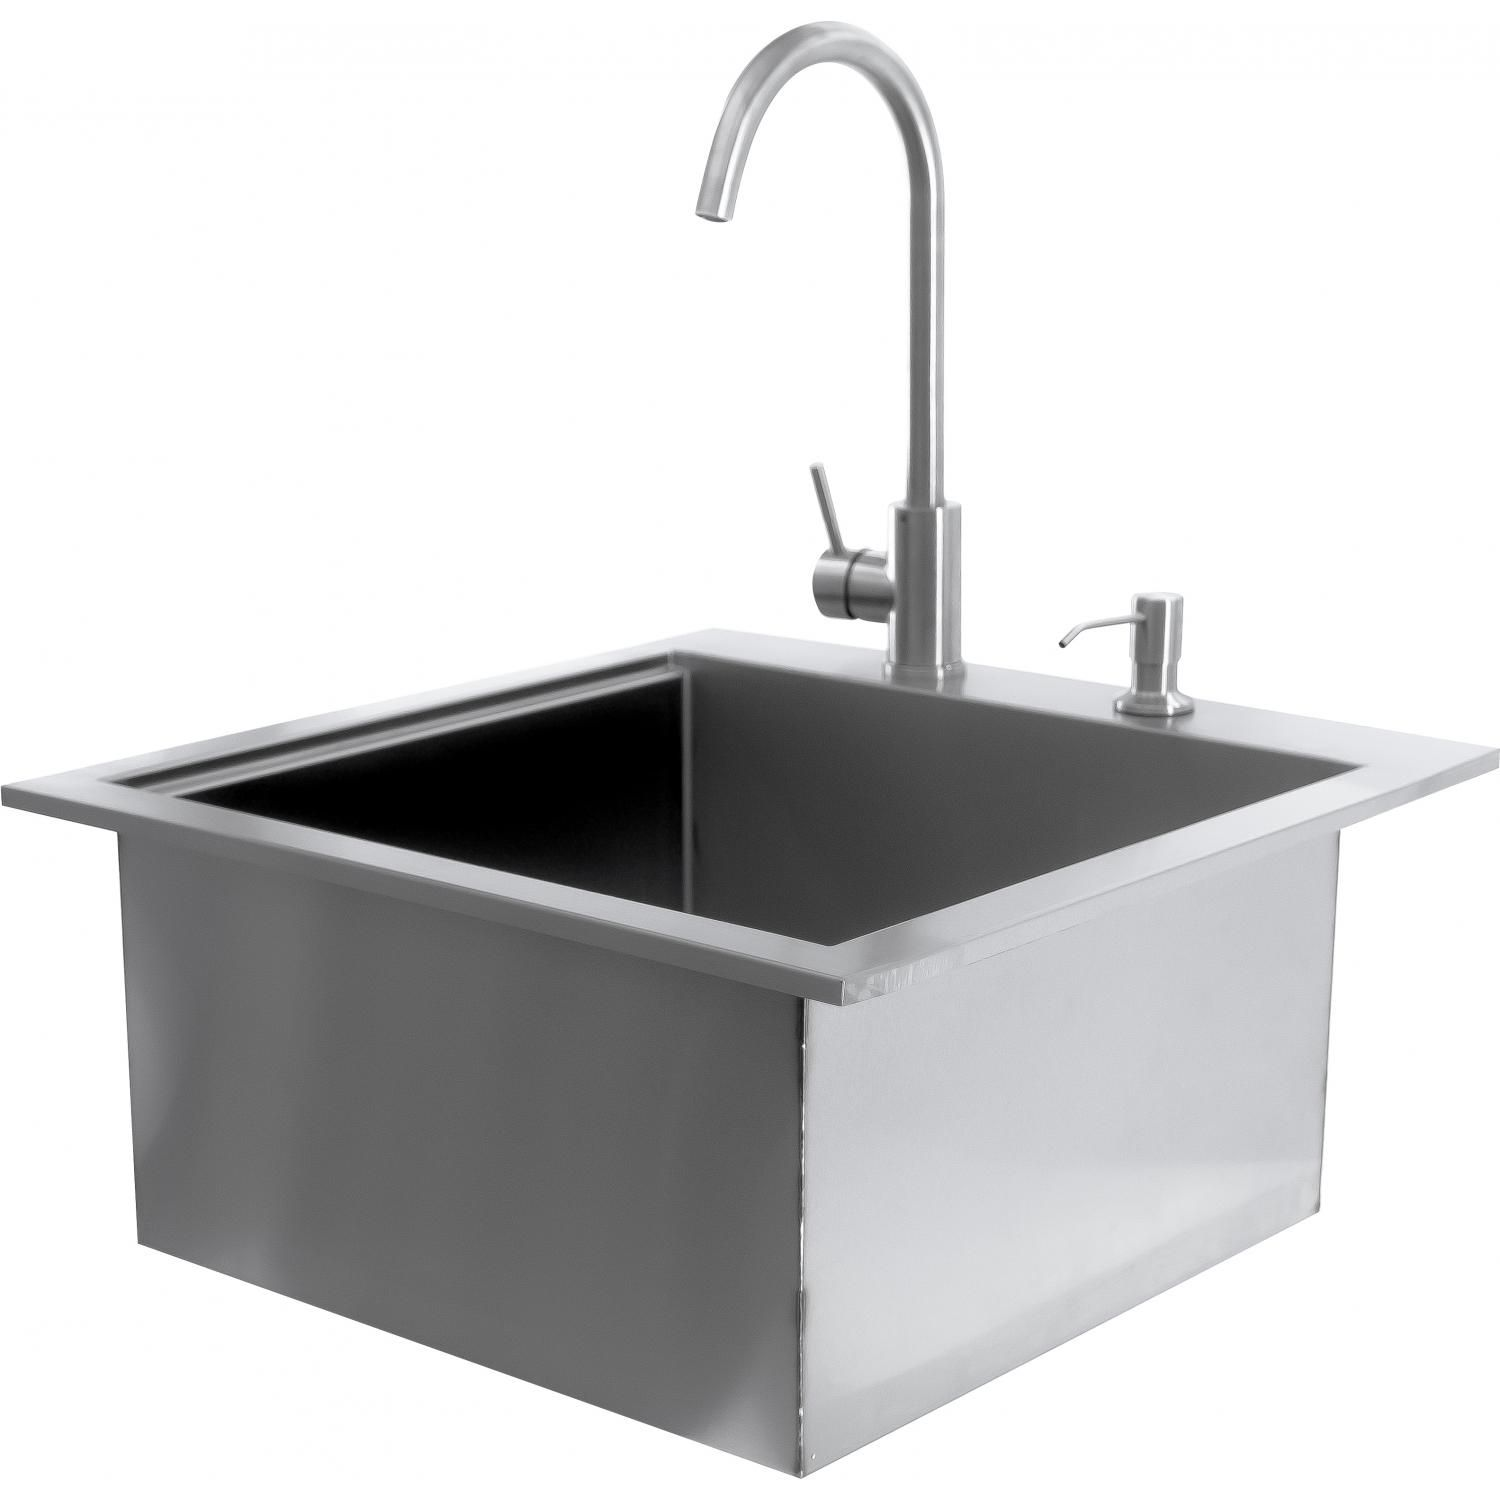 Bbqguys Sonoma Series 21 Inch Outdoor Rated Stainless Steel Drop In Sink With Hot Cold Faucet Bbqguys In 2020 Sink Bar Sink Outdoor Sinks